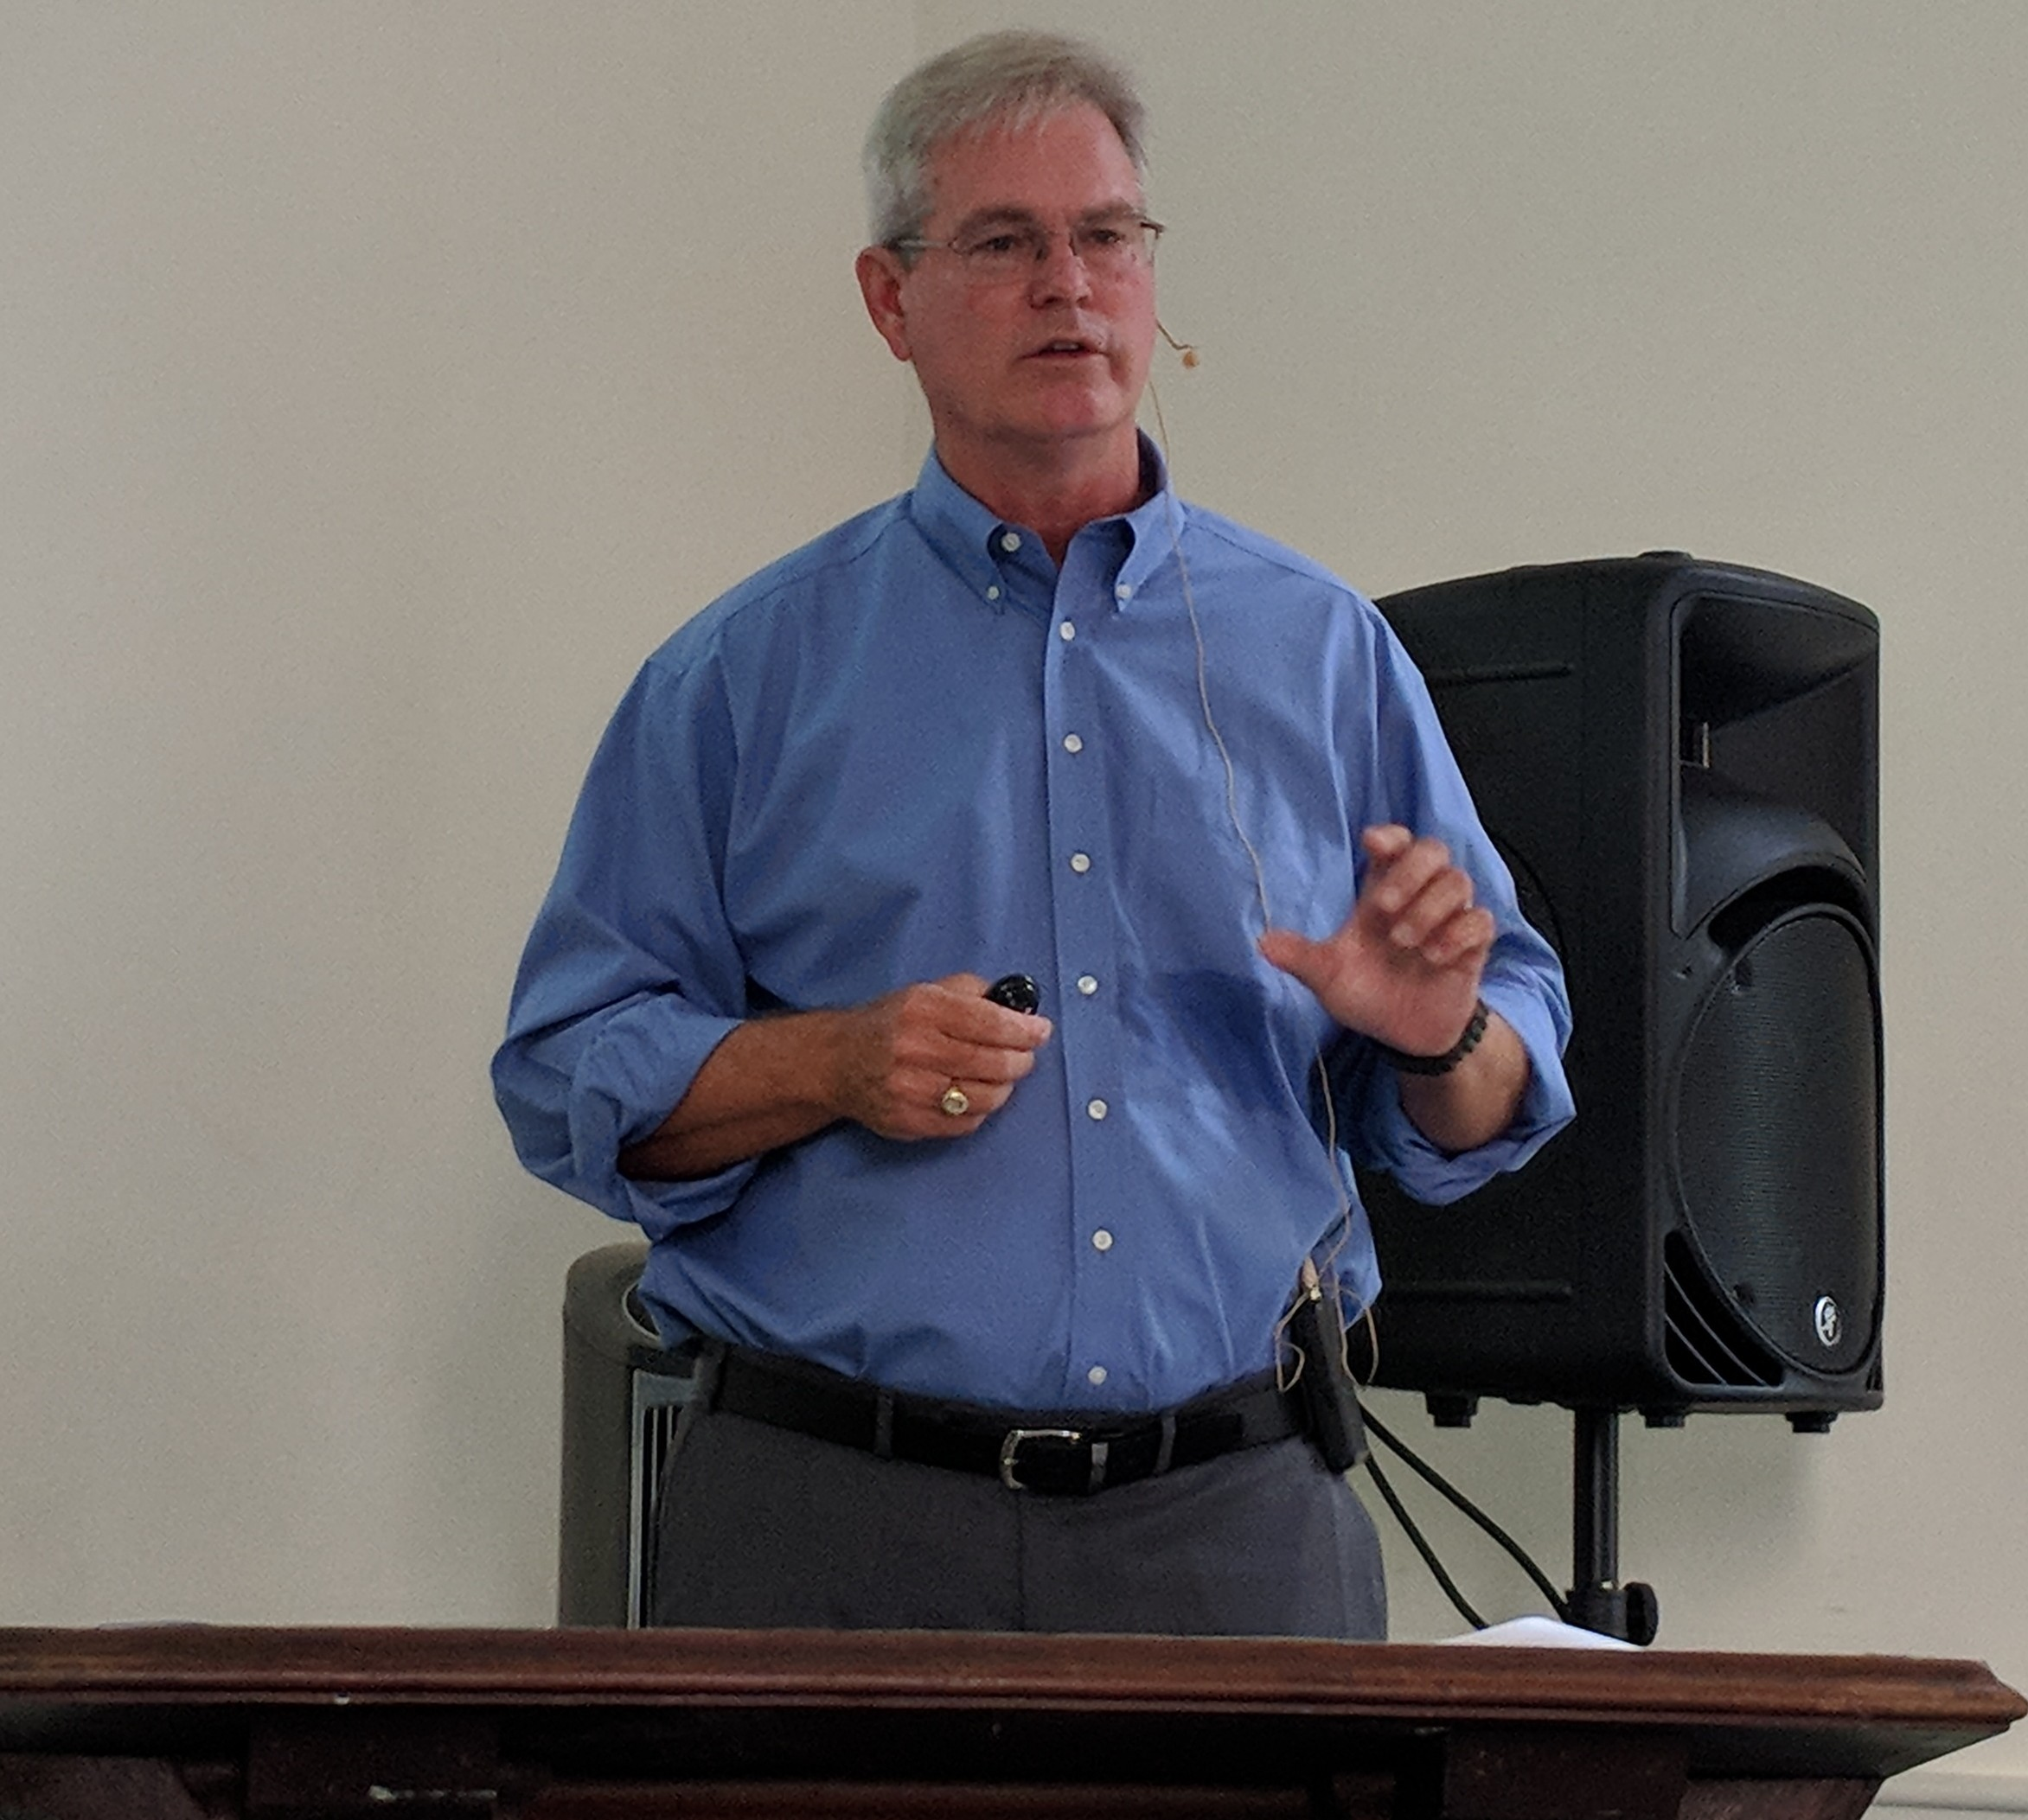 ExxonMobil executive and URI graduate Stephen Greenlee recently spoke at the South Ferry Church near the Graduate School of Oceanography in Narragansett, R.I. (Tim Faulkner/ecoRI News)